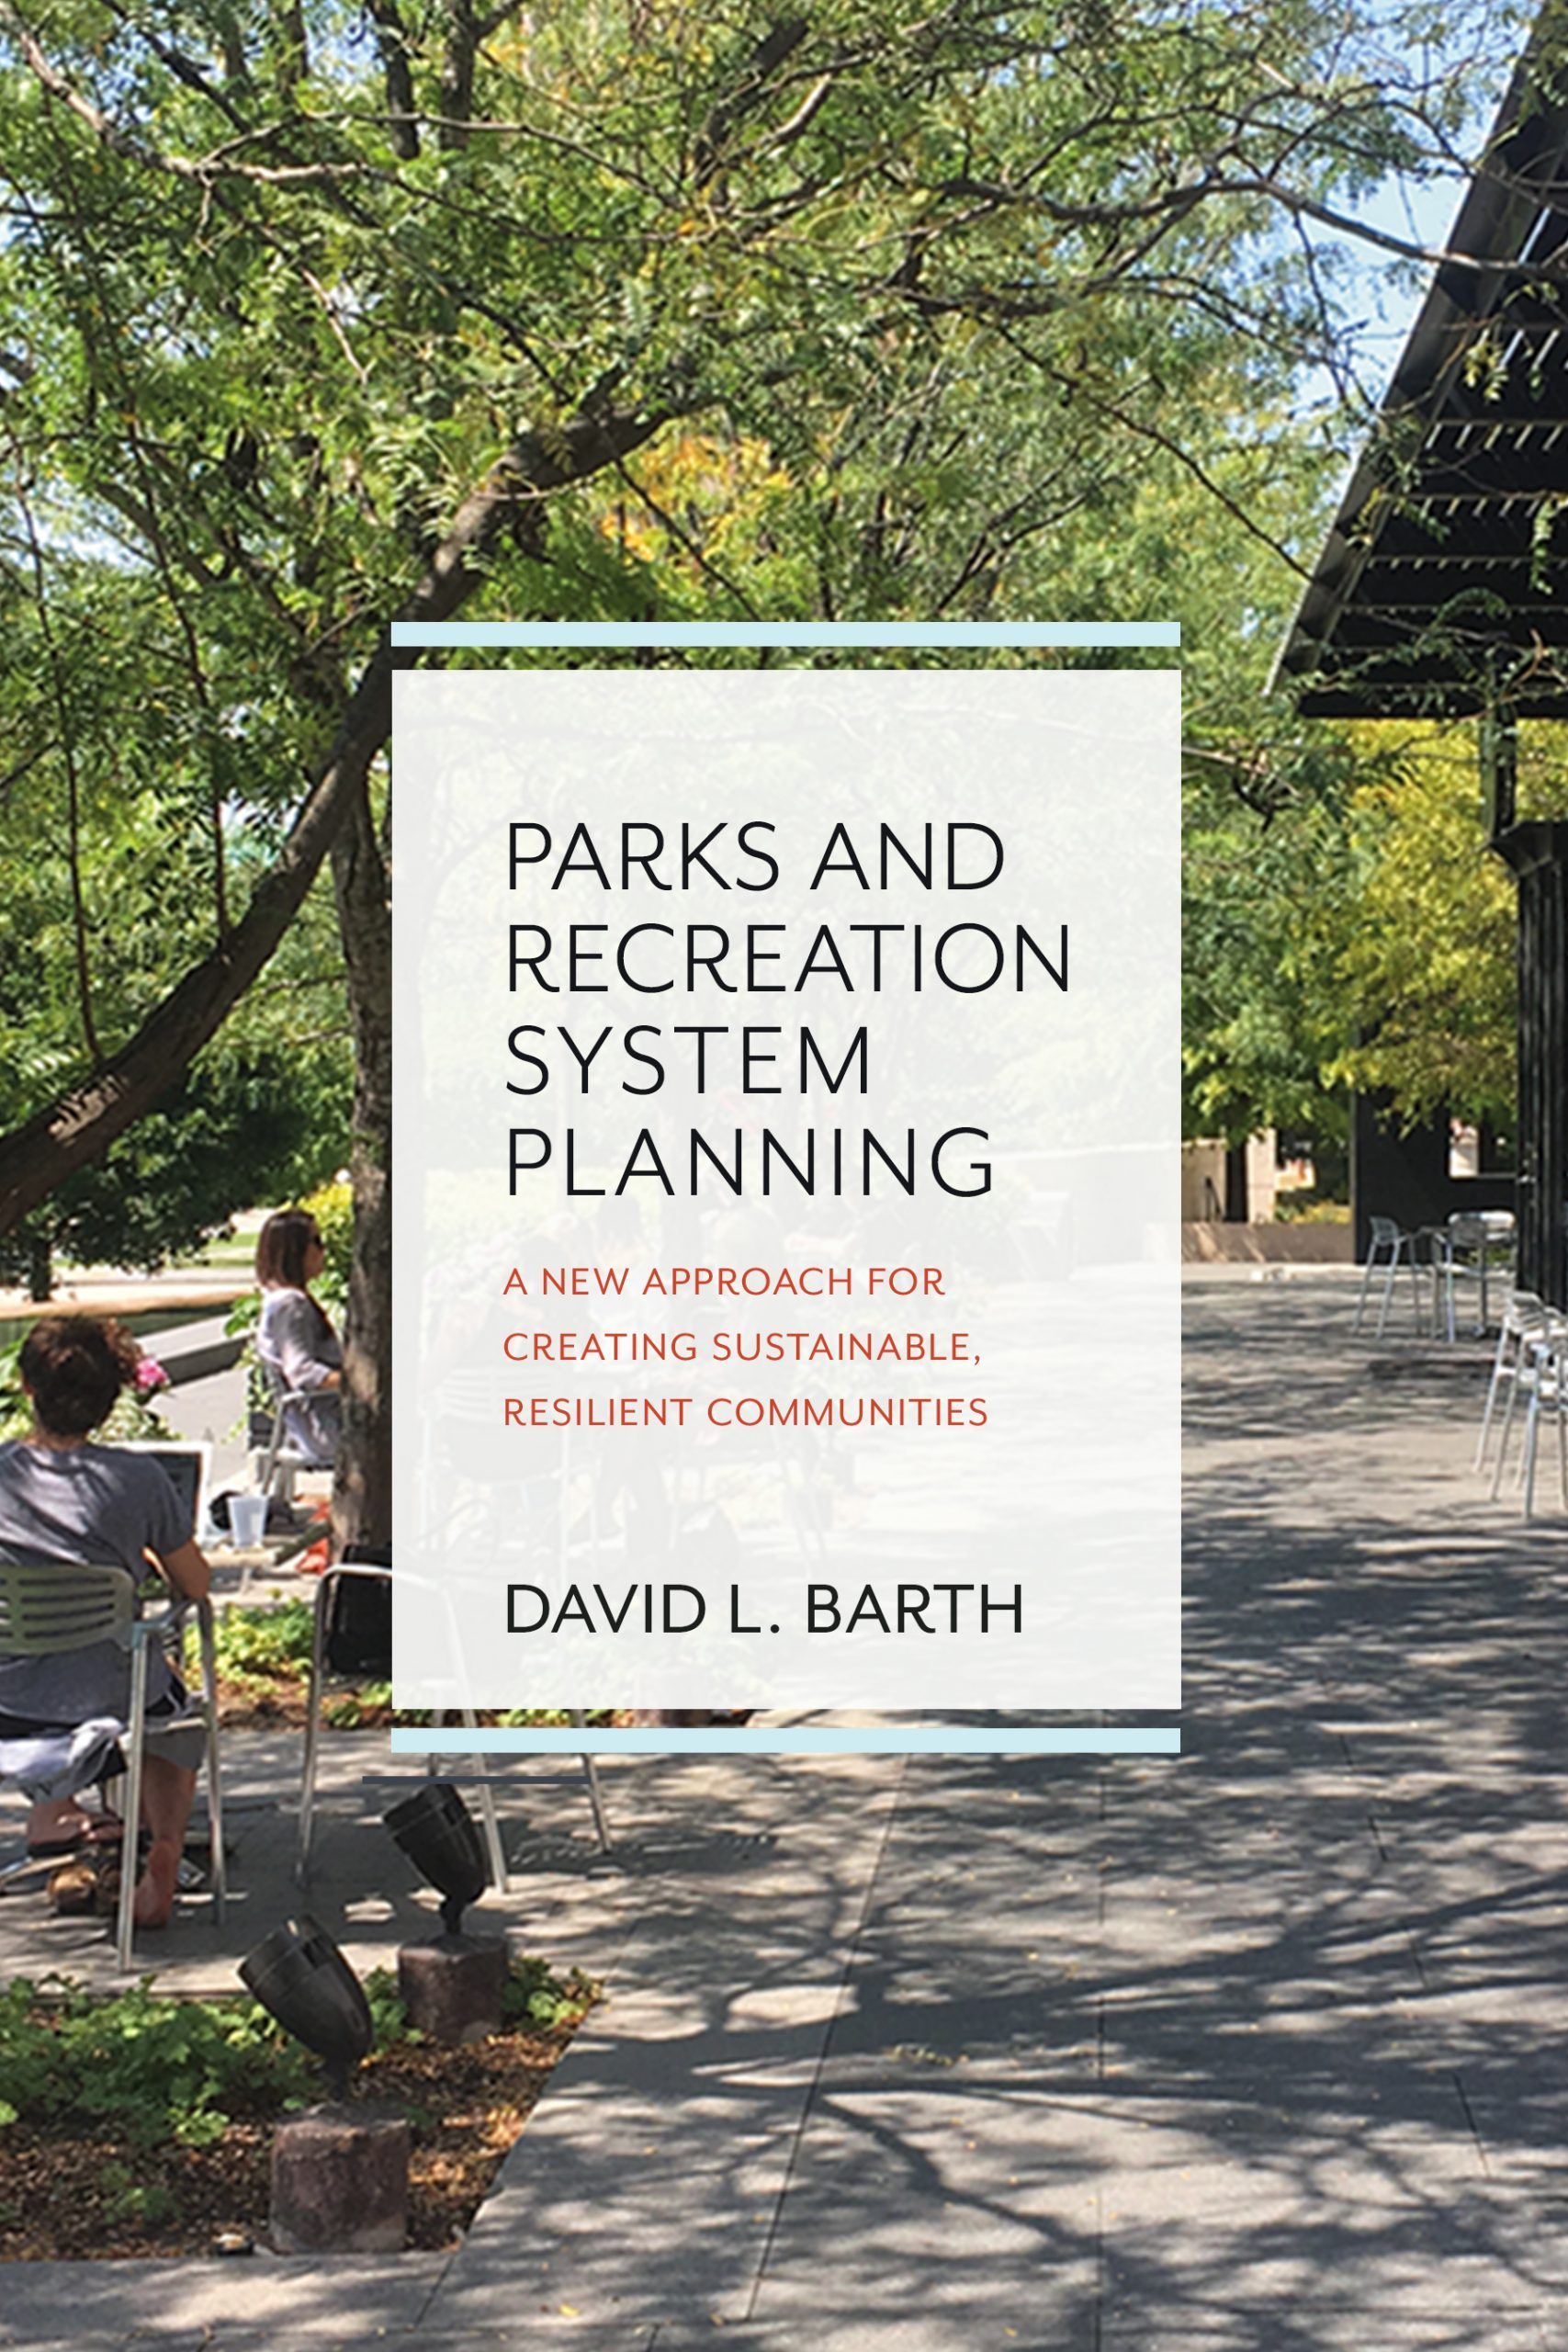 Parks and recreation system planning: a new approach for creating sustainable, resilient communities